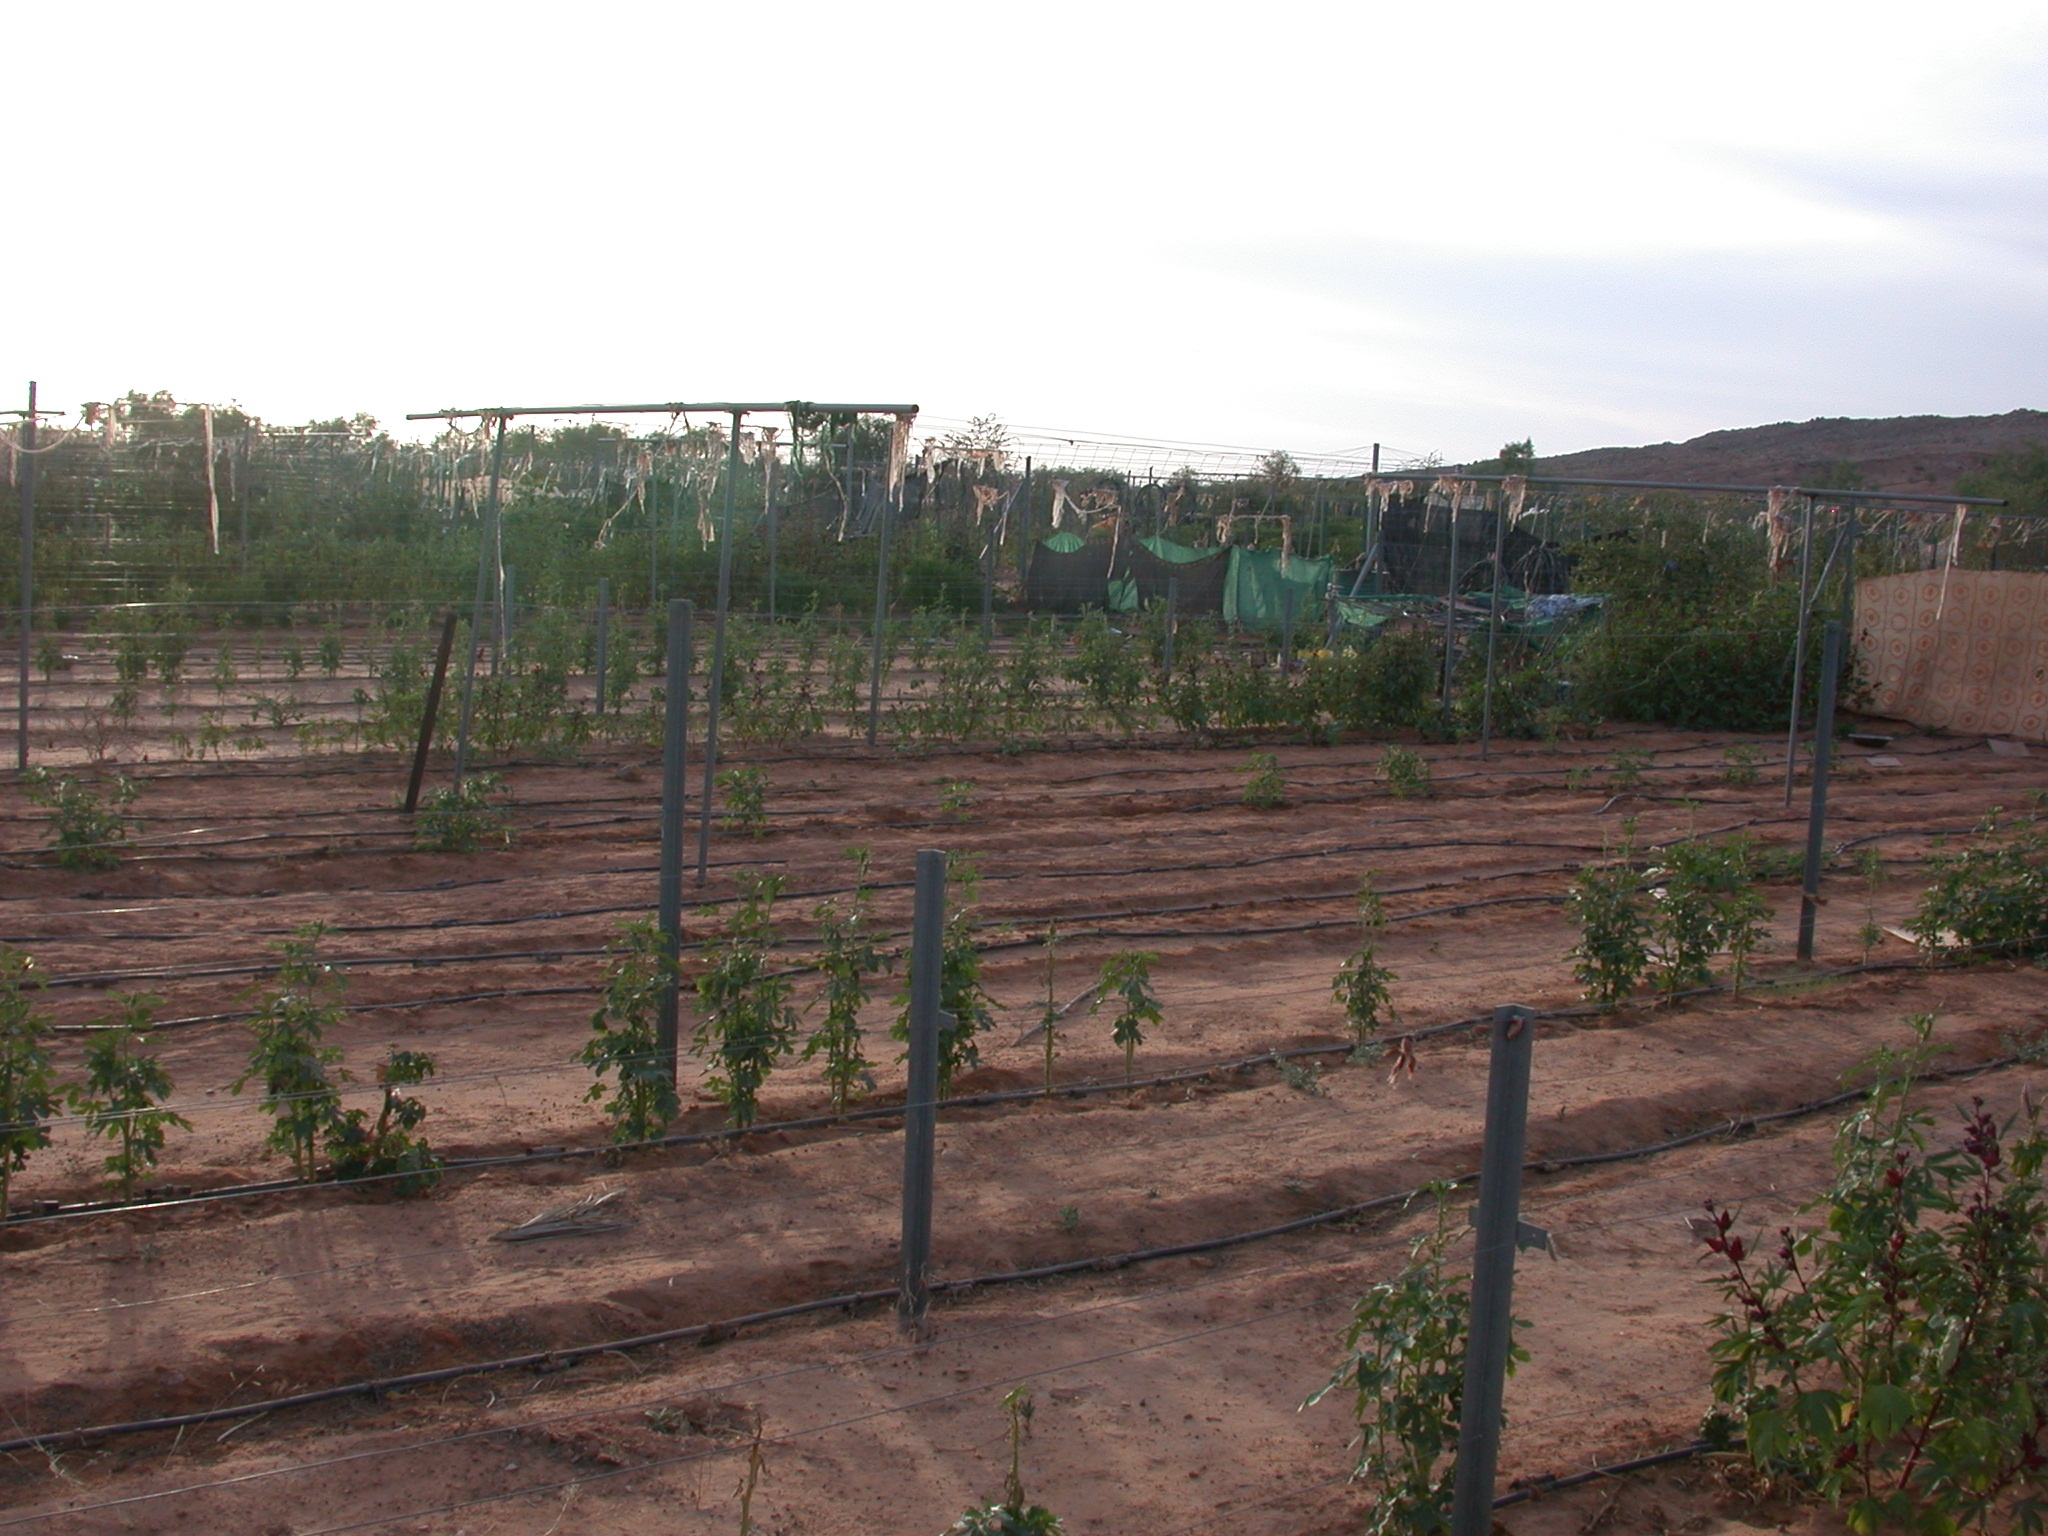 Farming Cooperative Project in Oualata, Mauritania